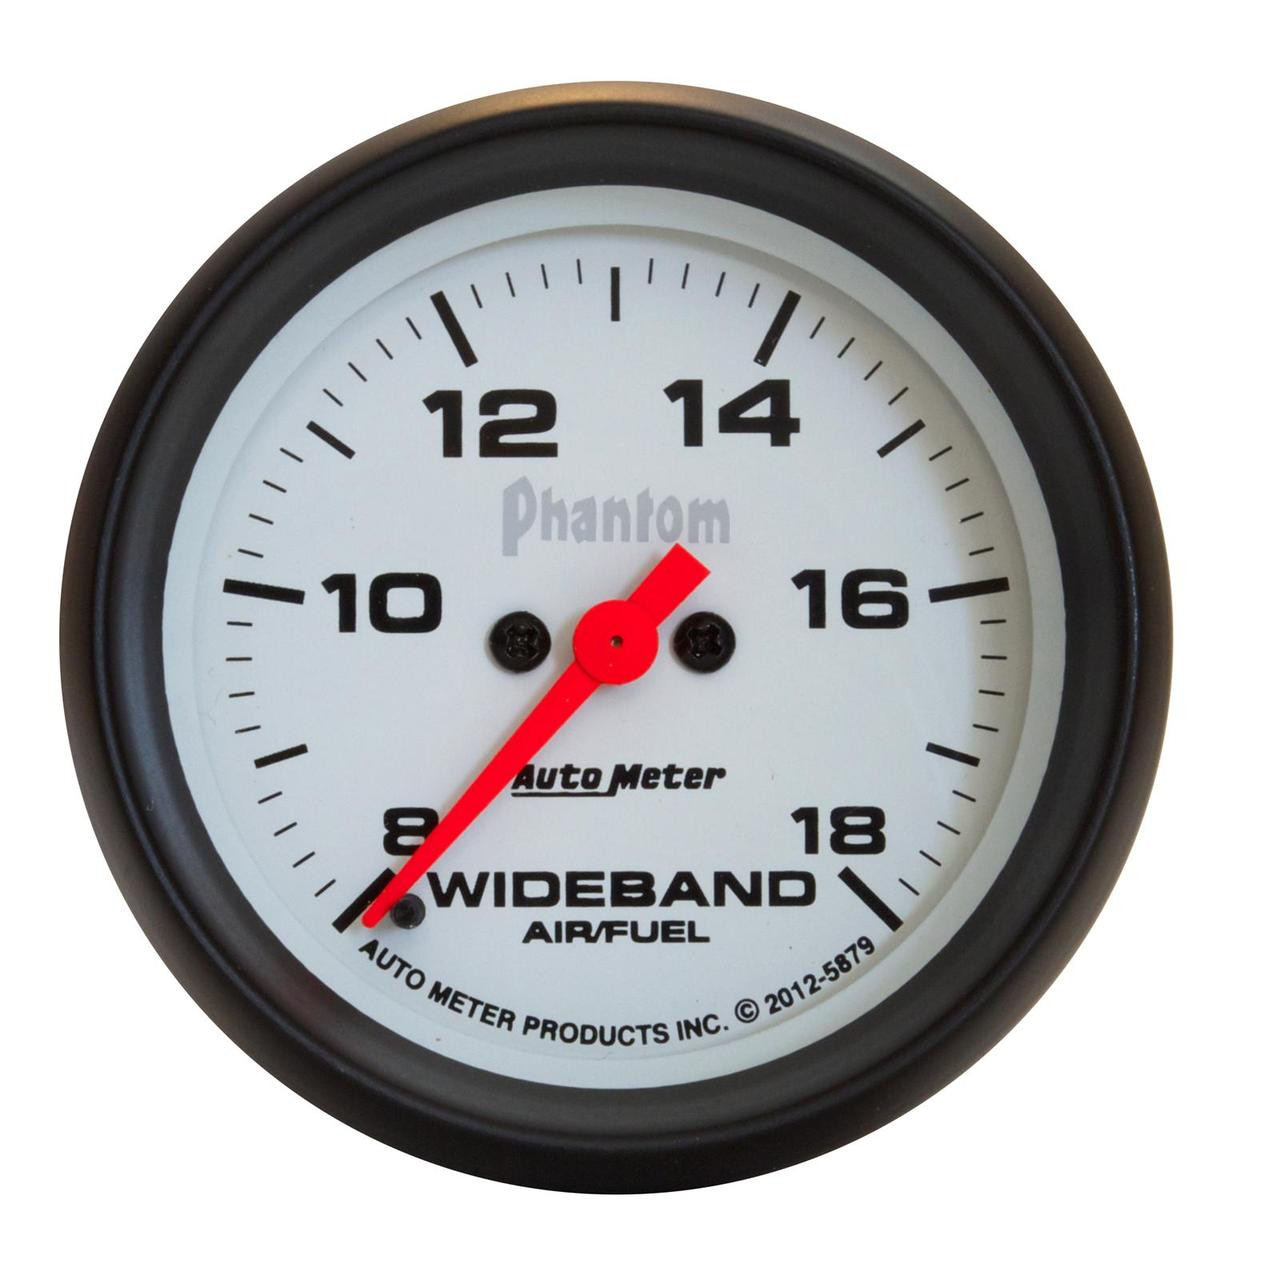 Auto Meter Phantom - Wideband Air/Fuel Ratio Gauge 66.68mm - GenRacer